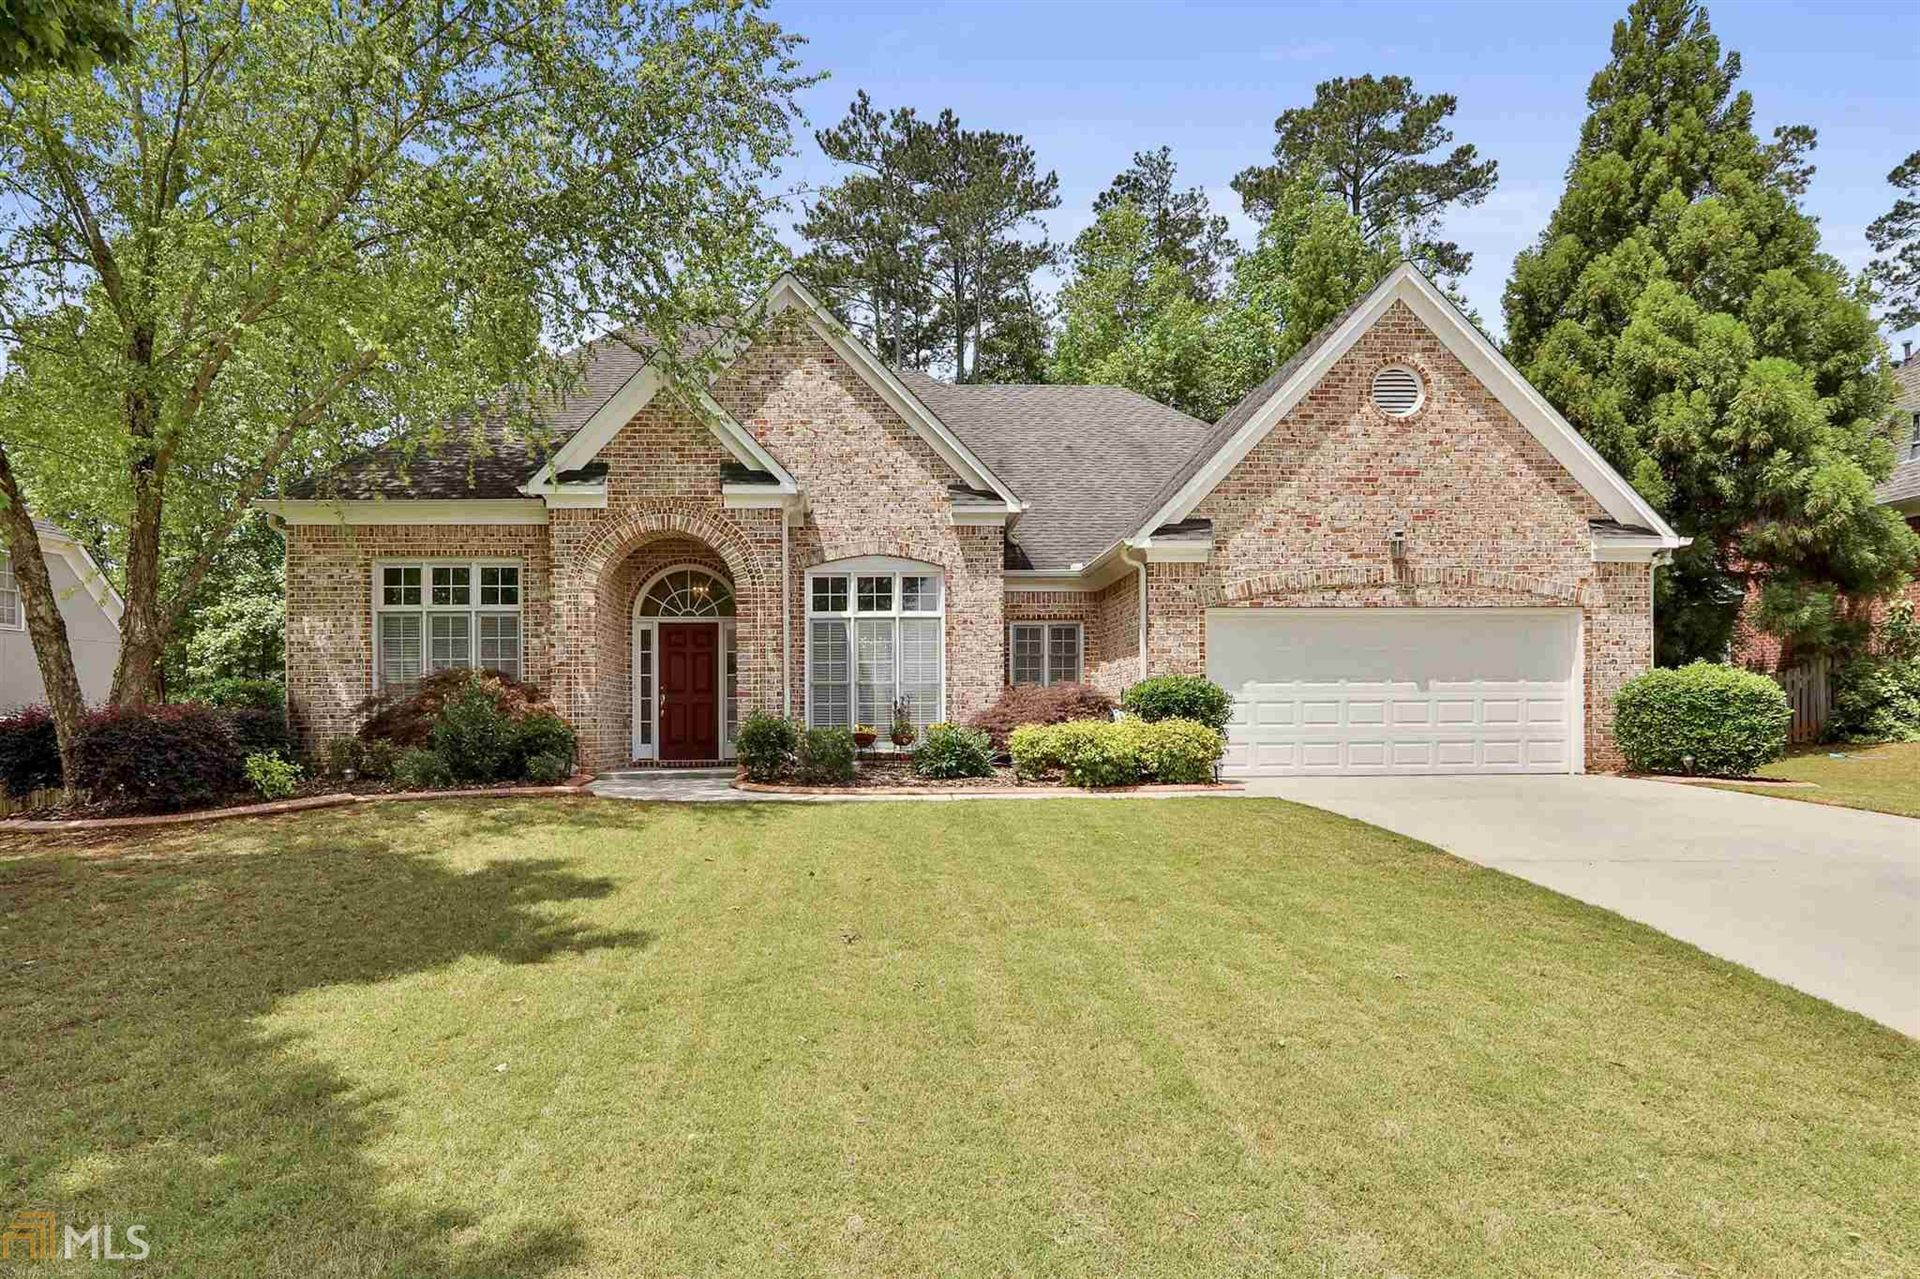 119 Holly Springs Dr, Peachtree City, GA 30269 - #: 8976949